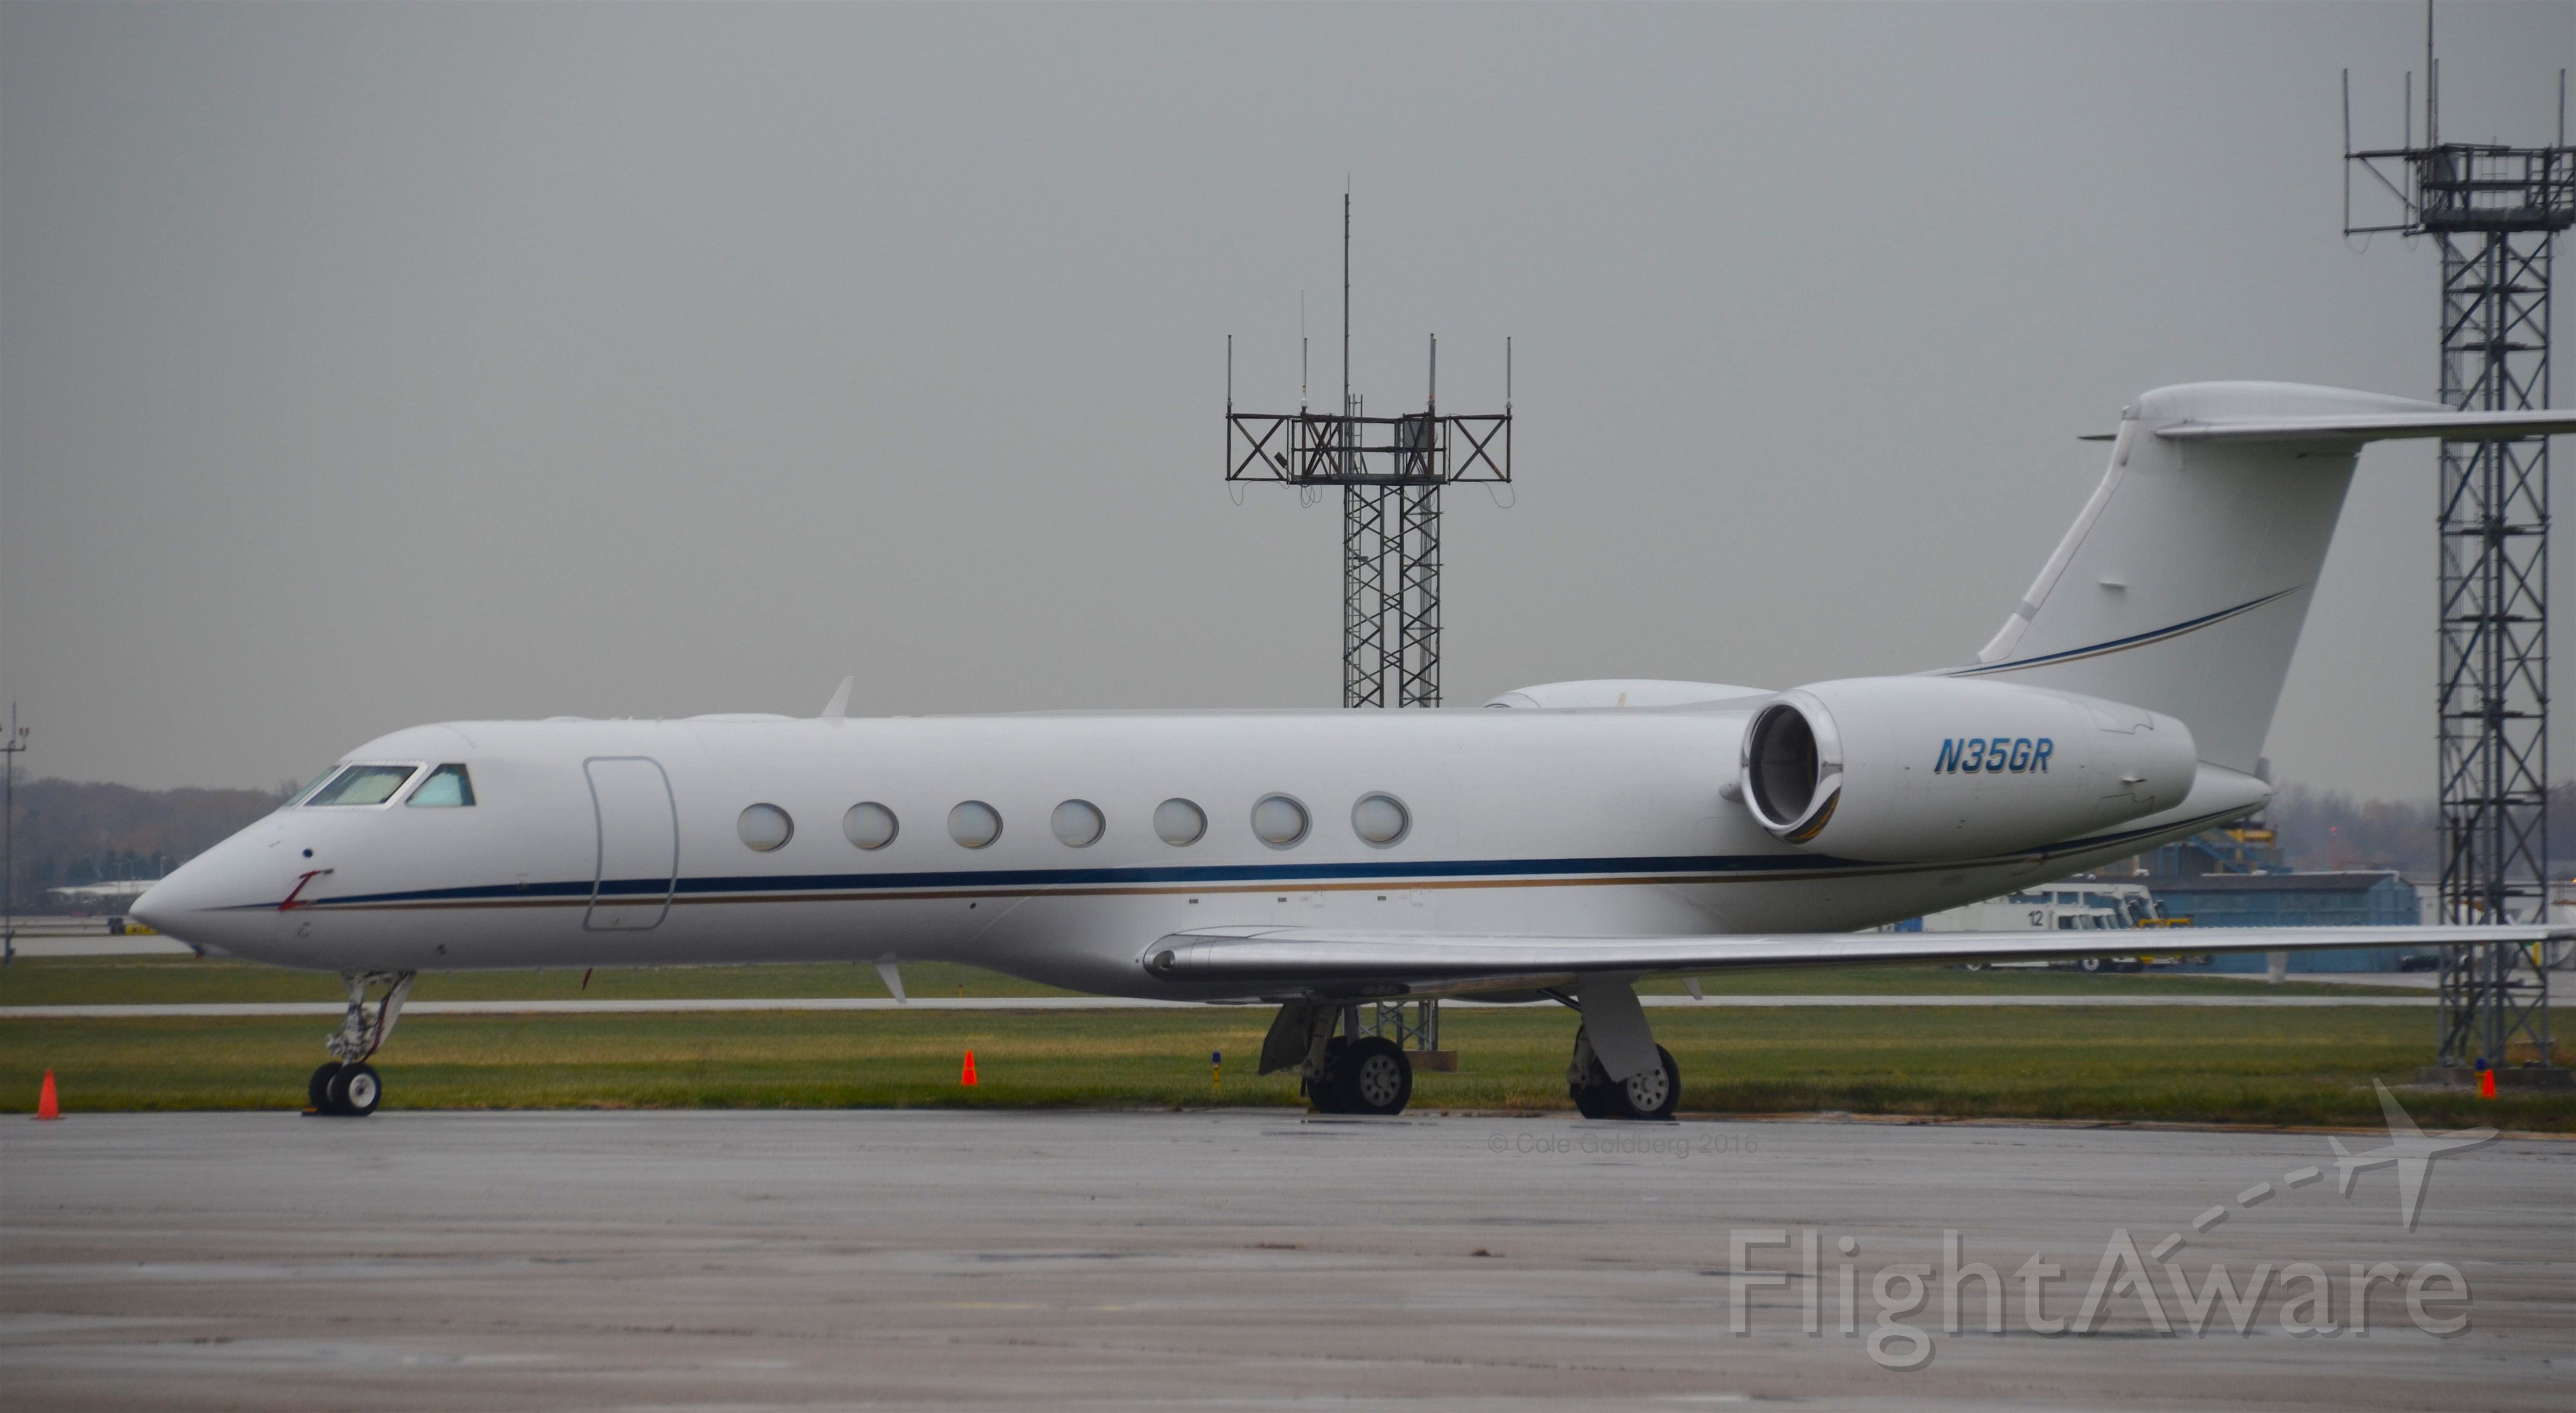 Gulfstream Aerospace Gulfstream V (N35GR) - N35GR seen on the Atlantic Aviation ramp at Cleveland Hopkins International Airport. Please look for more photos on OPShots.net